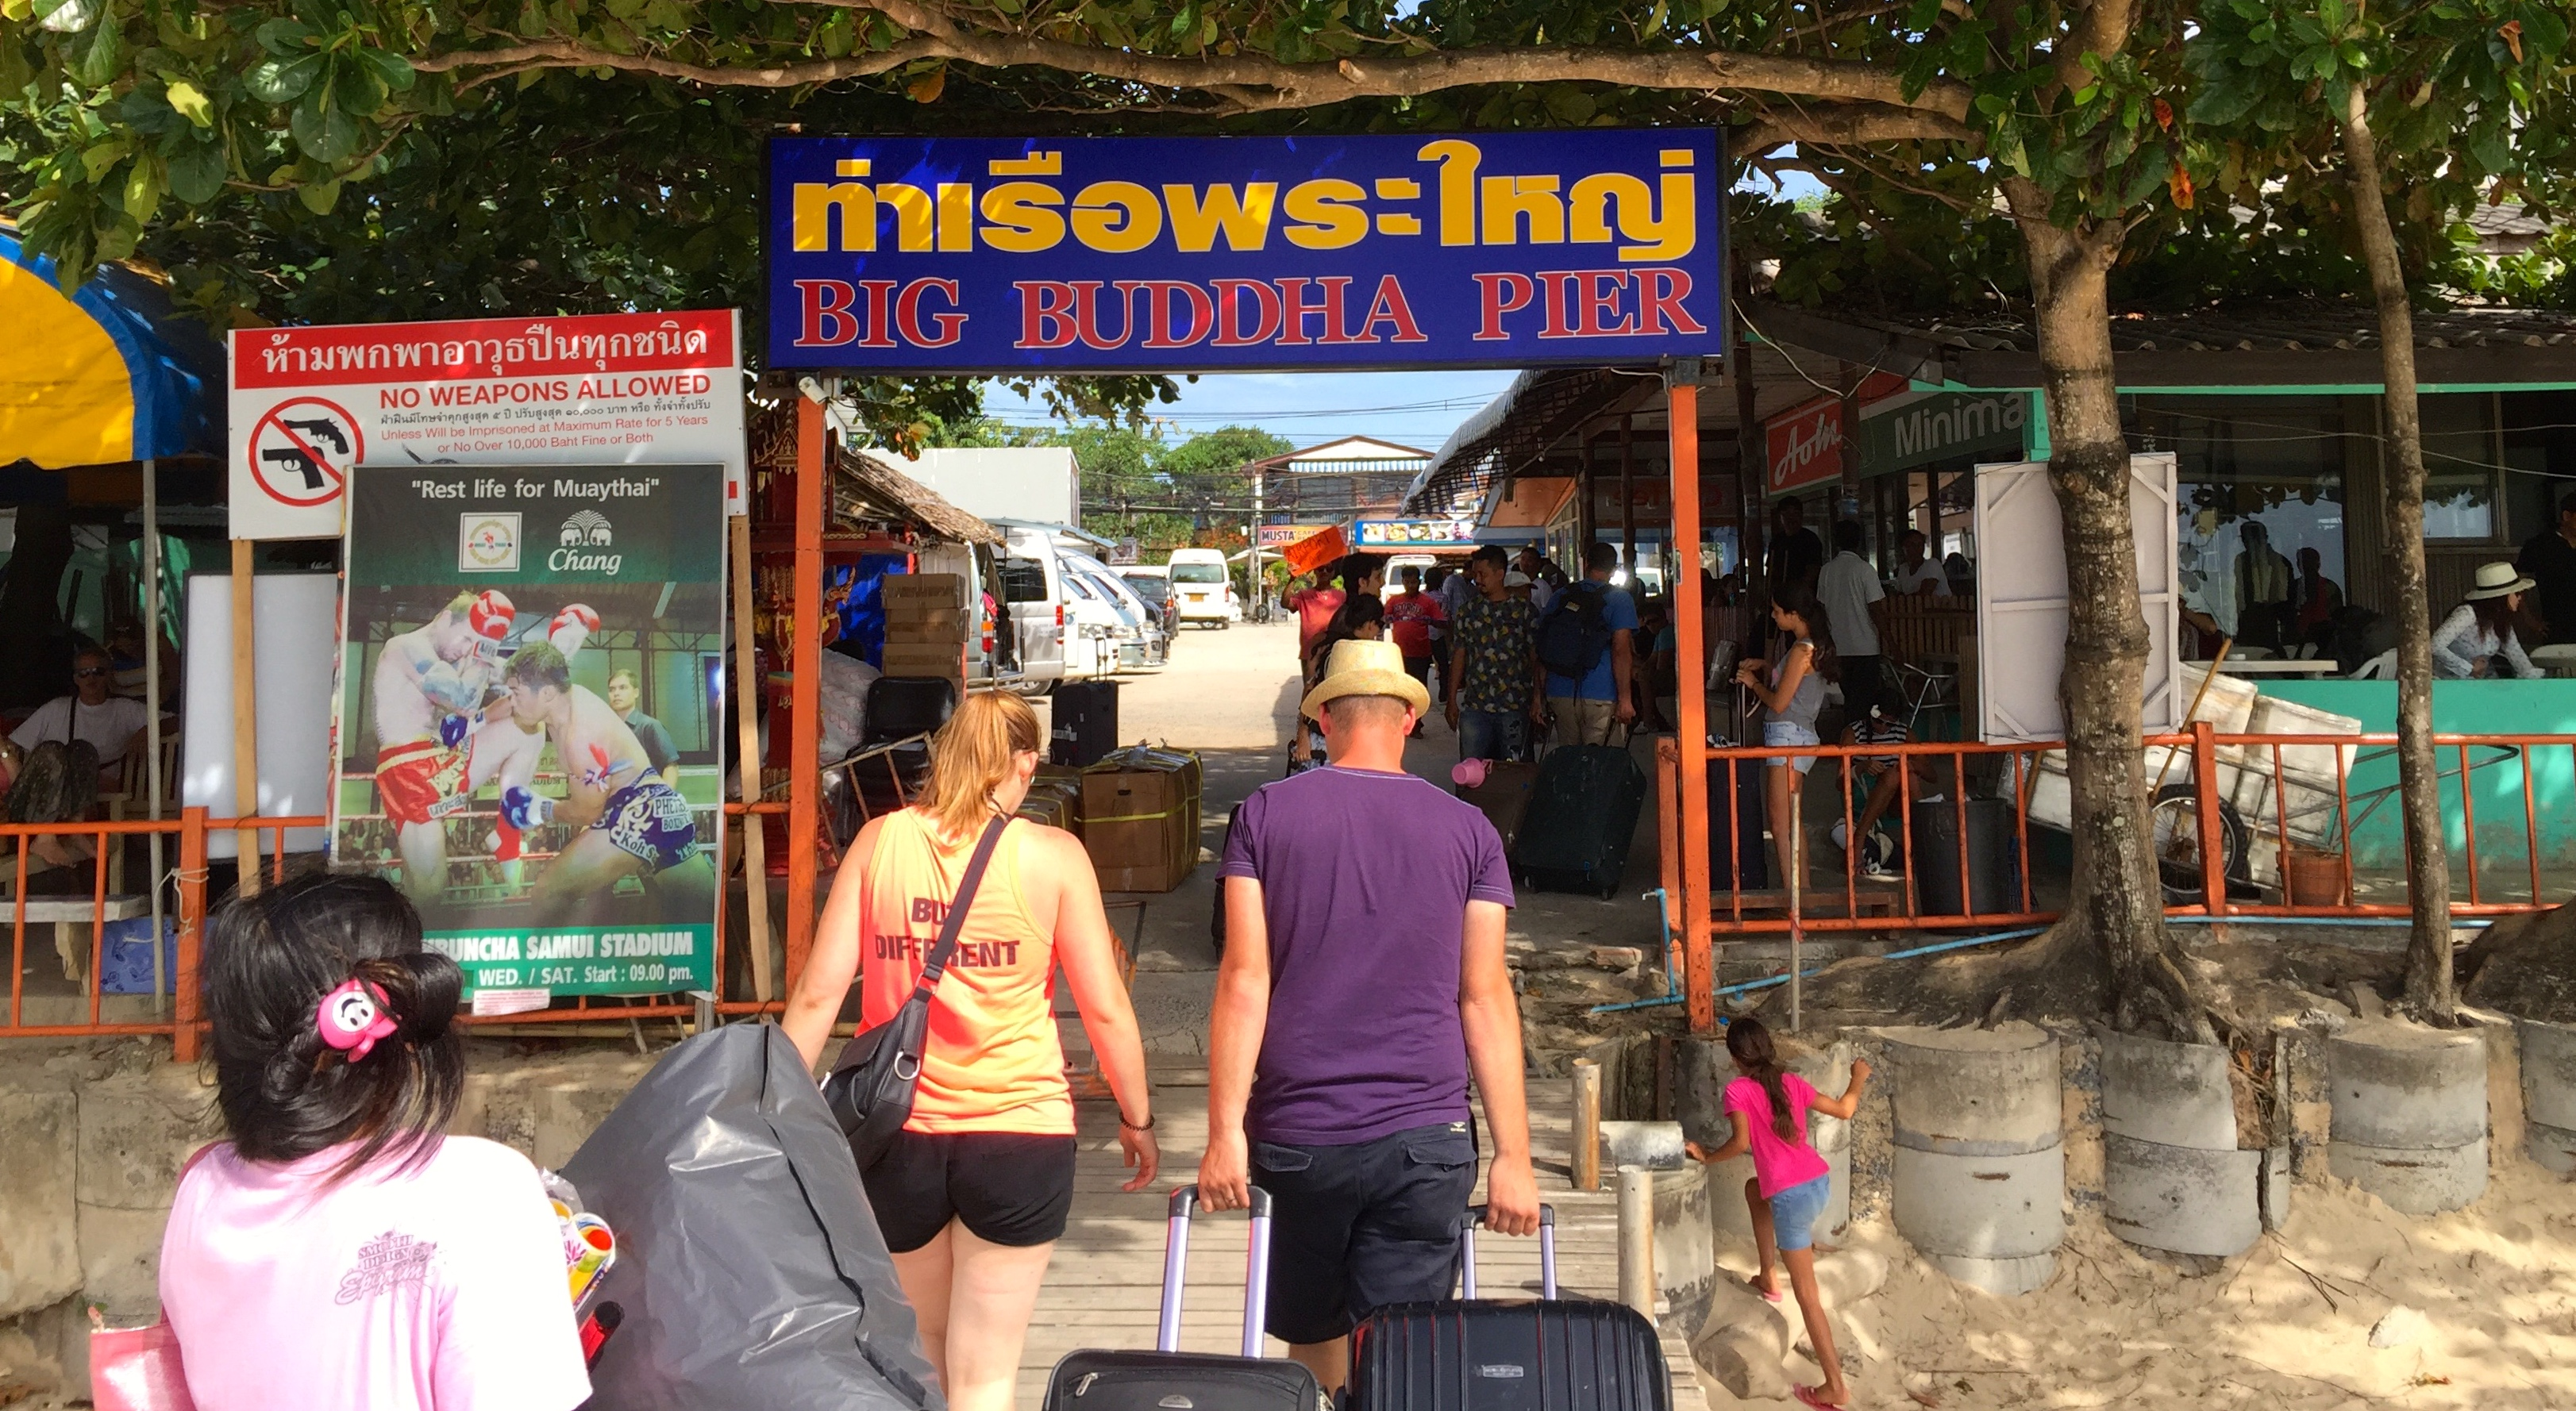 From buddha port you are around 20 30 minute taxi ride away to the koh samui immigration office located on the other side of the island in na thon